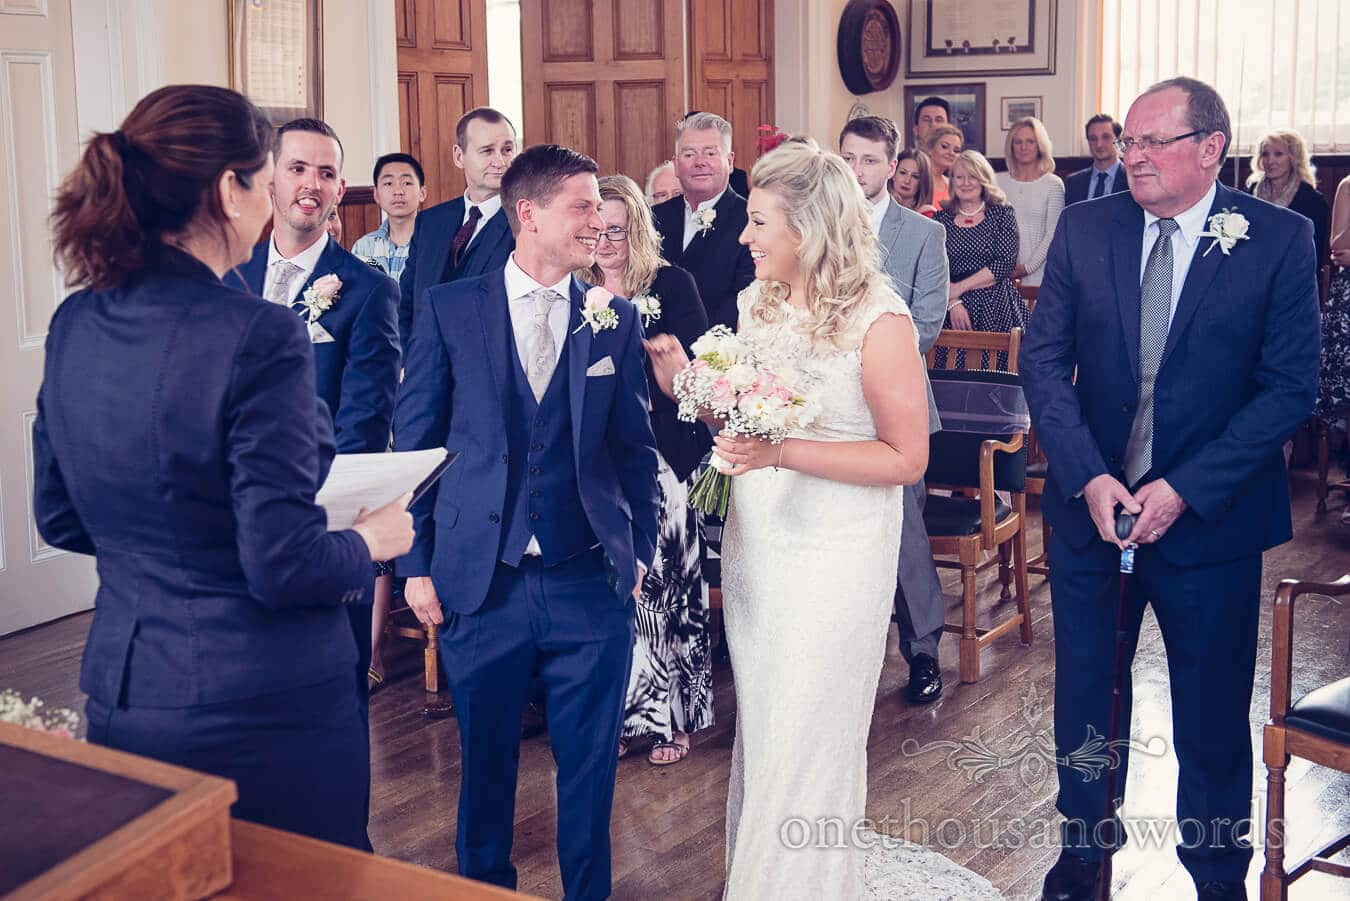 Civil wedding ceremony at Swanage town hall